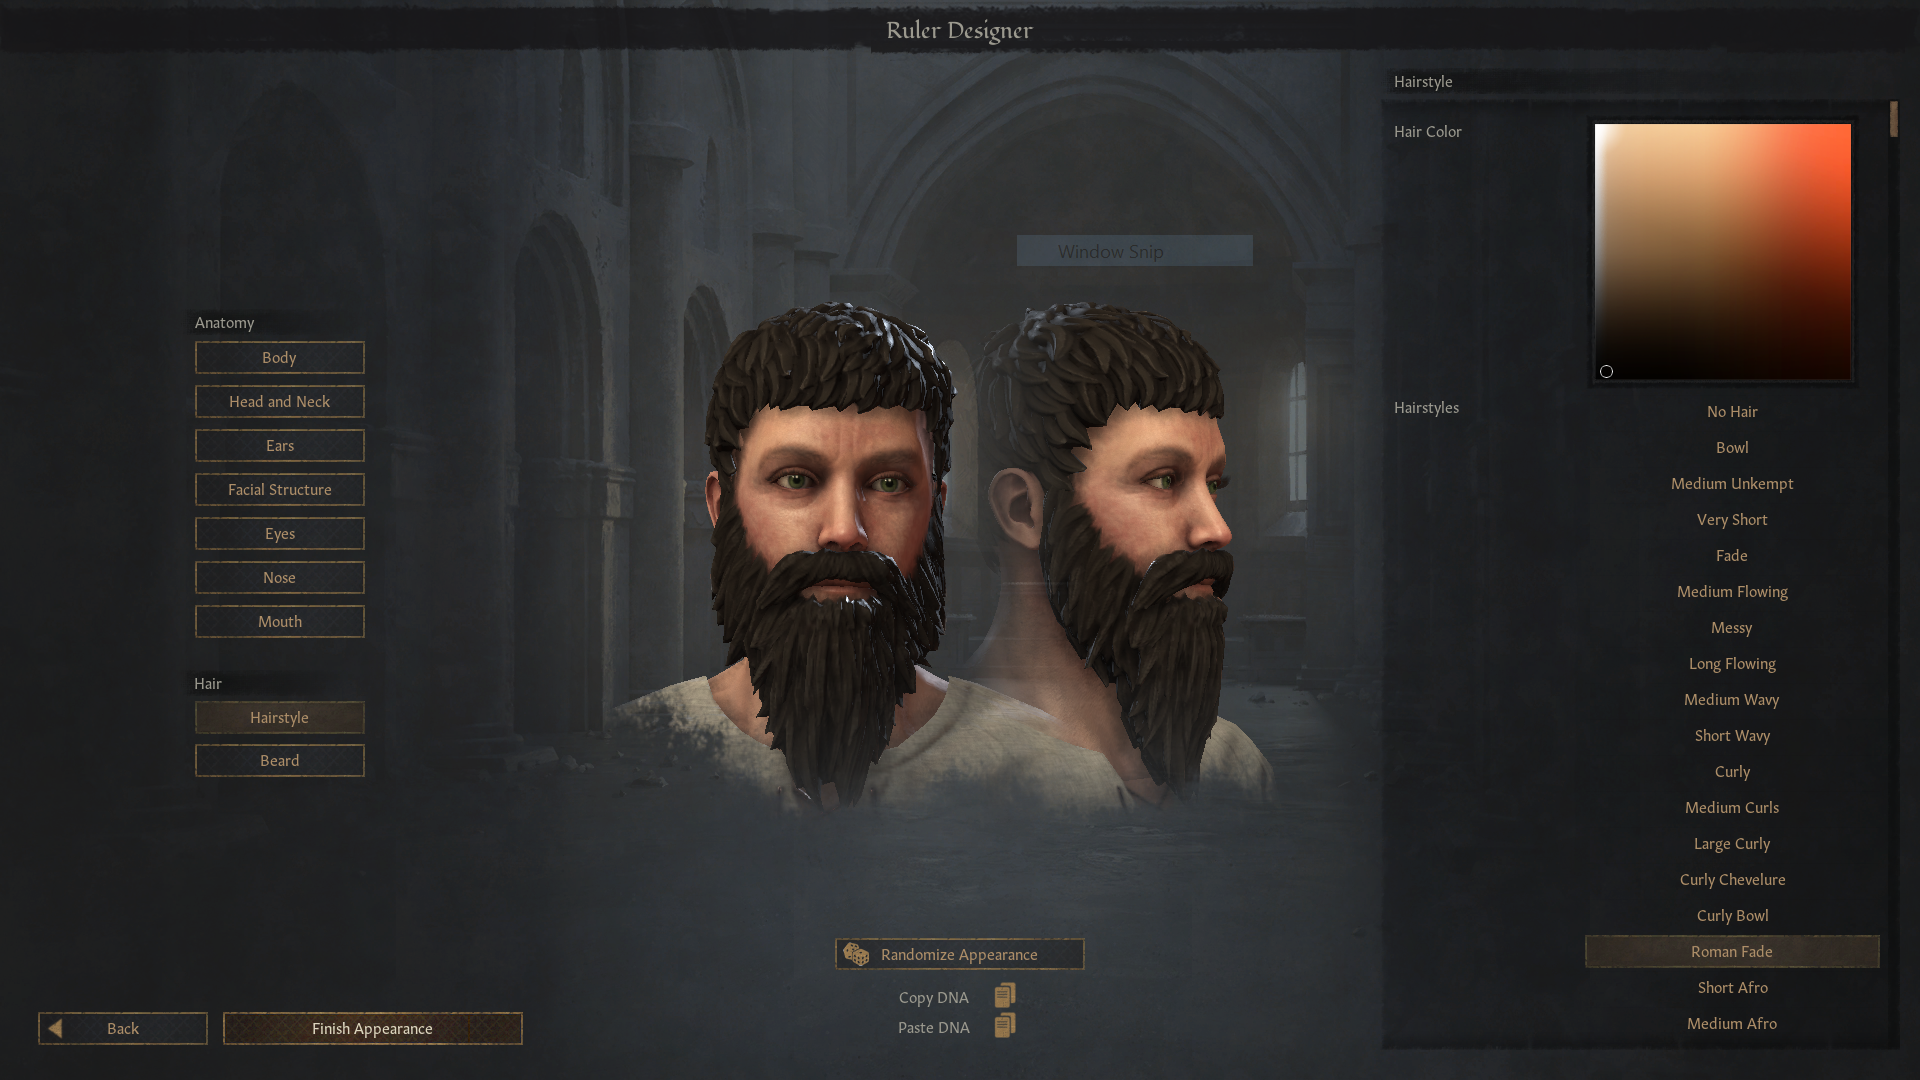 16_RD_HairStyles.PNG